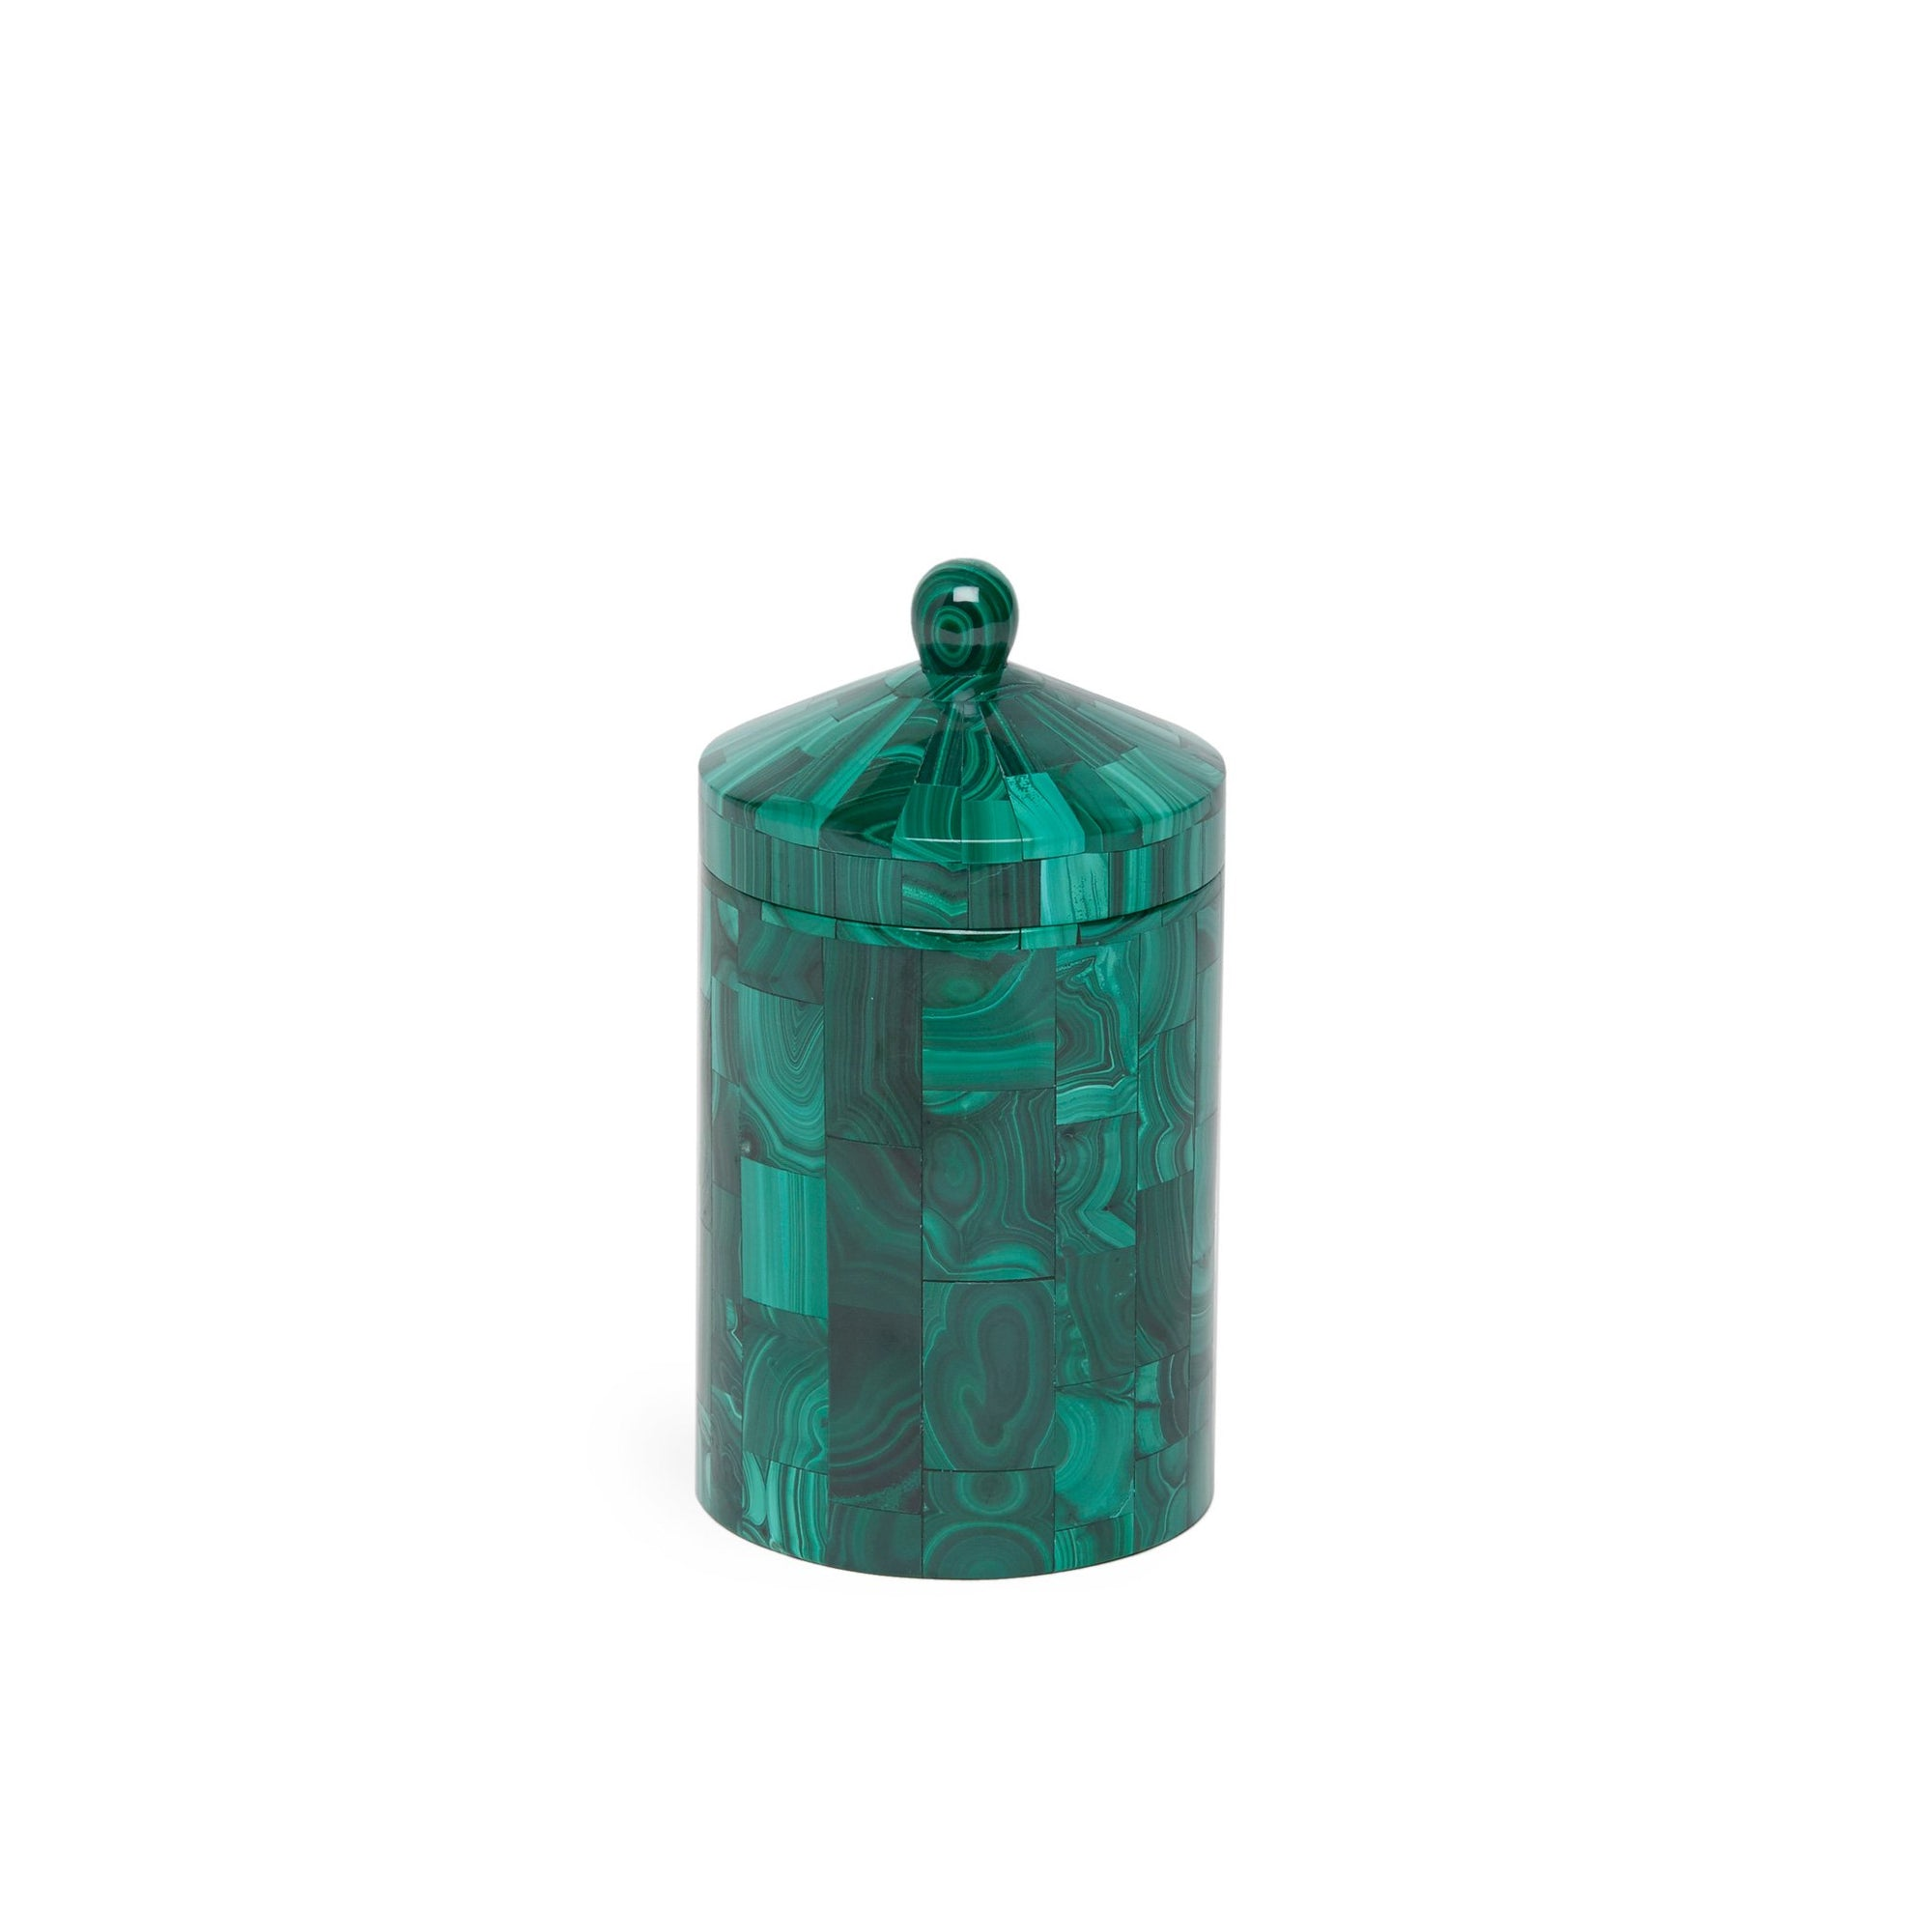 3364-MALA Sherle Wagner International Stone Covered Jar in Malachite